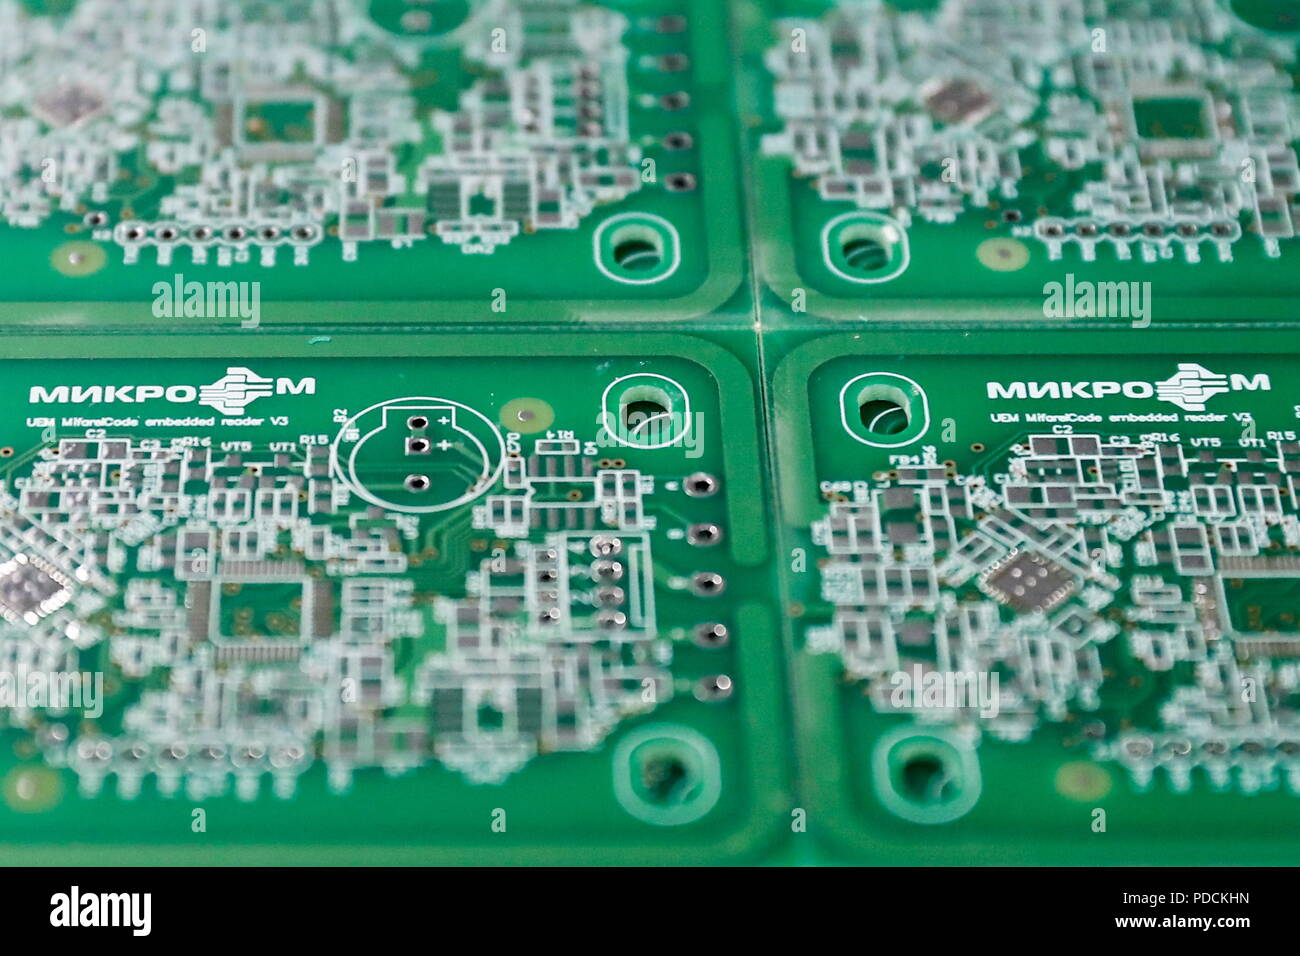 A Printed Circuit Board Stock Photos Stockfoto Pcb Used In Industrial Electronic Moscow Russia August 9 2018